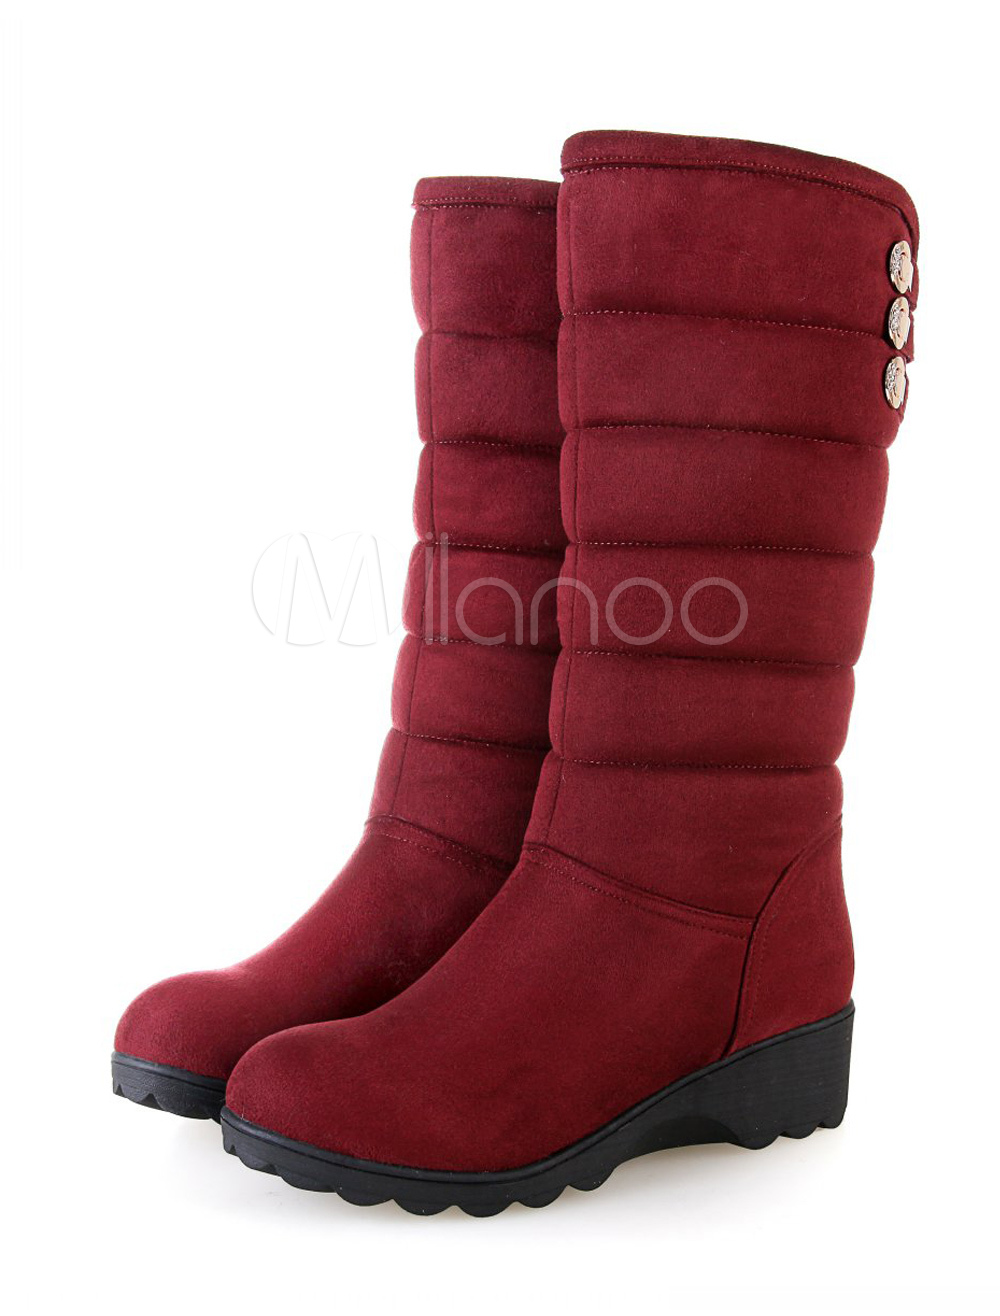 Round Toe Suede Leather Snow Boots